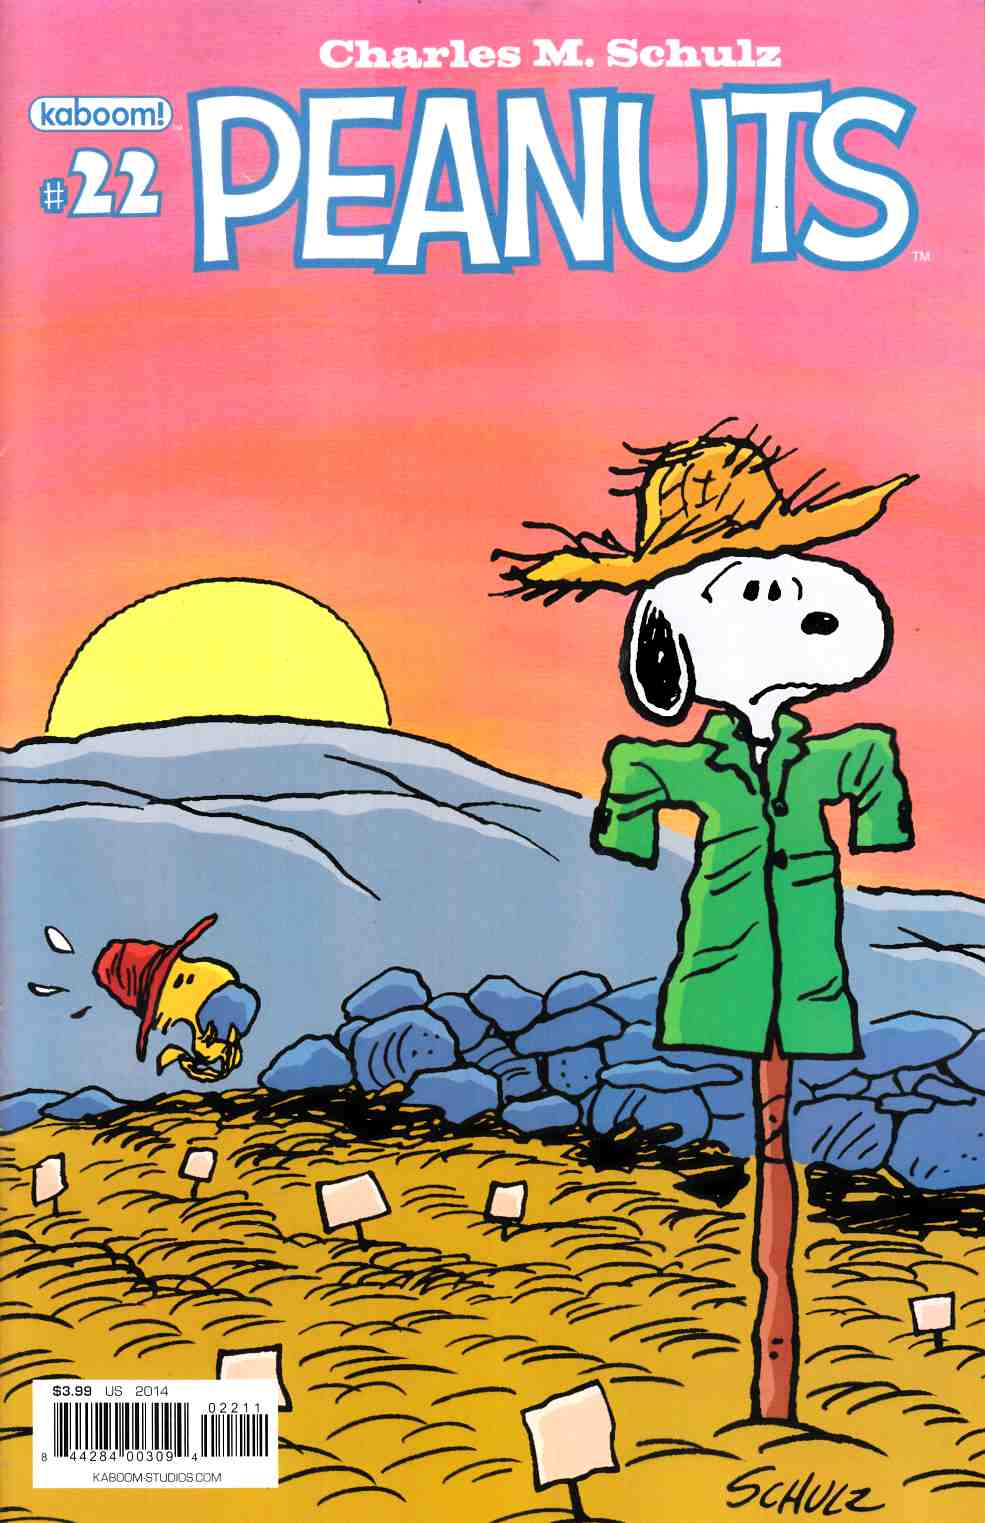 Peanuts Volume 2 #22 [Boom Comic] LARGE